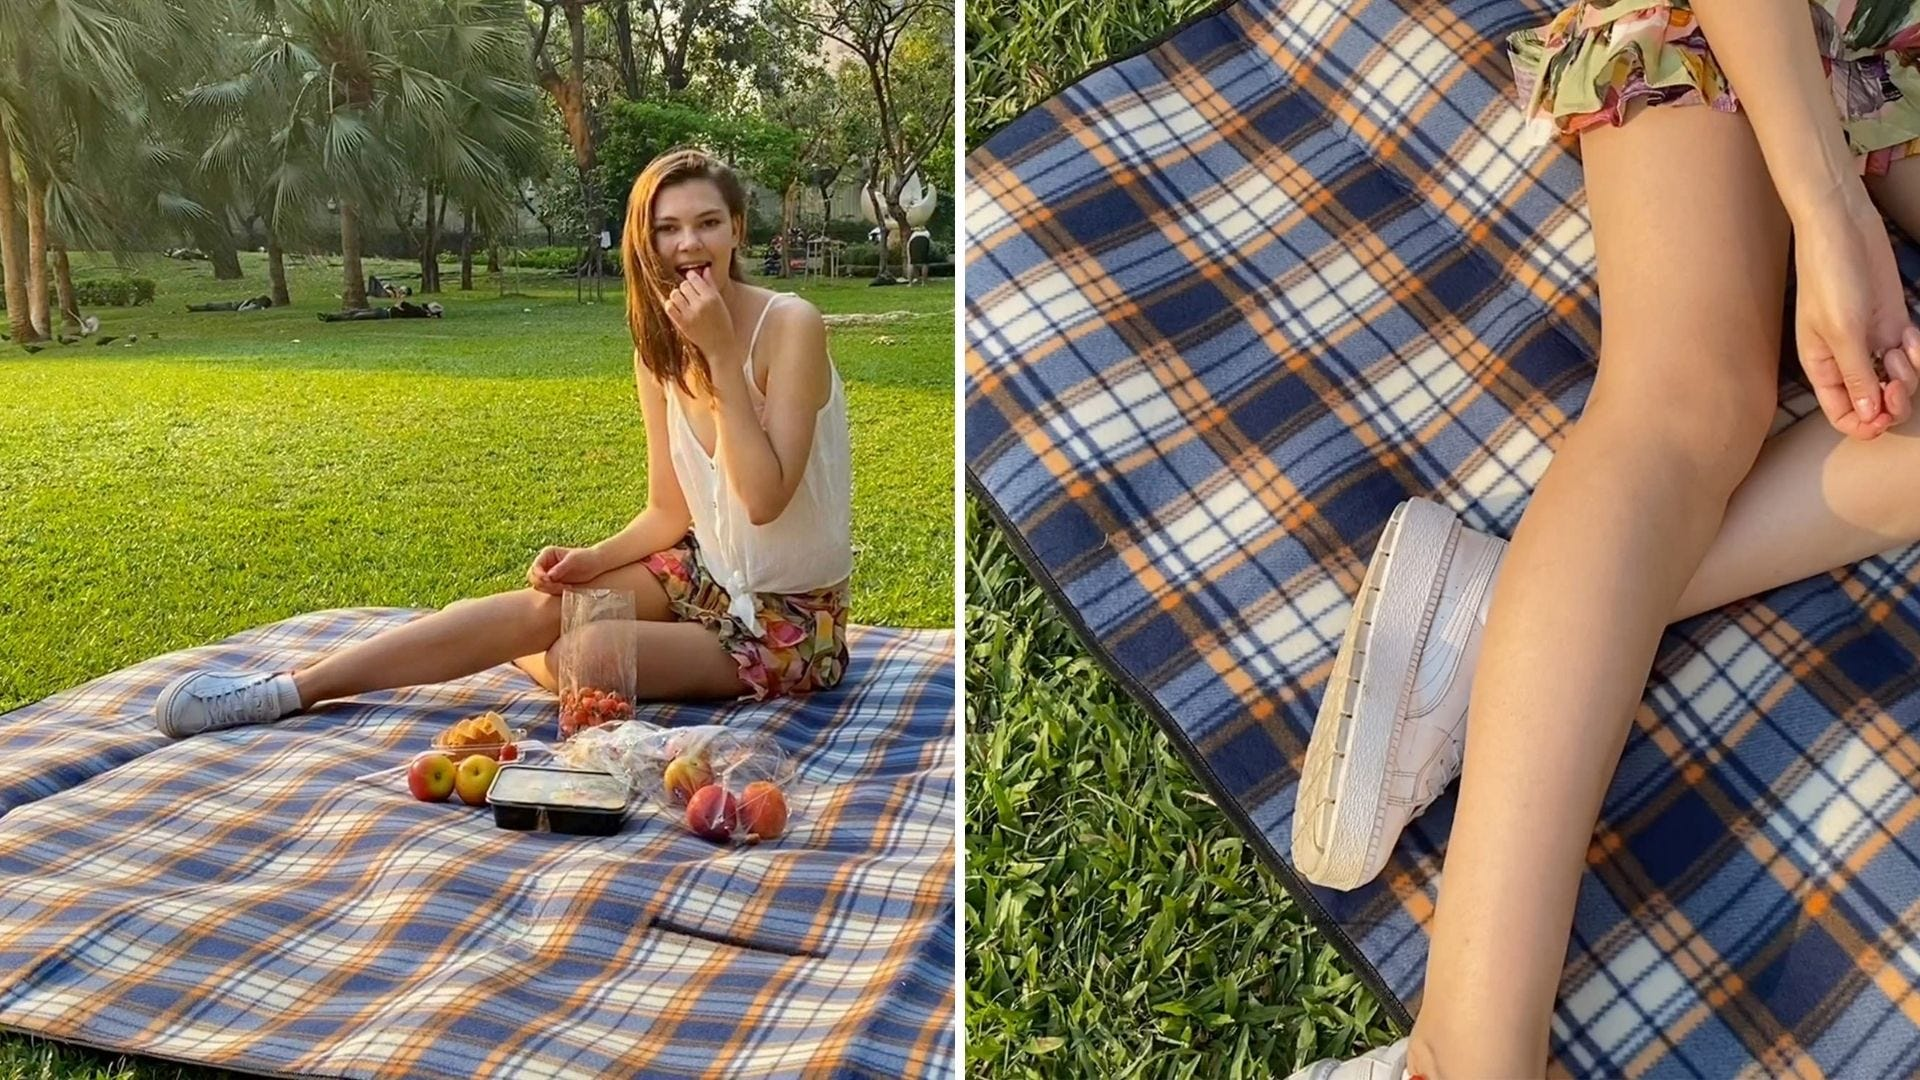 A woman sits on a picnic blanket outside